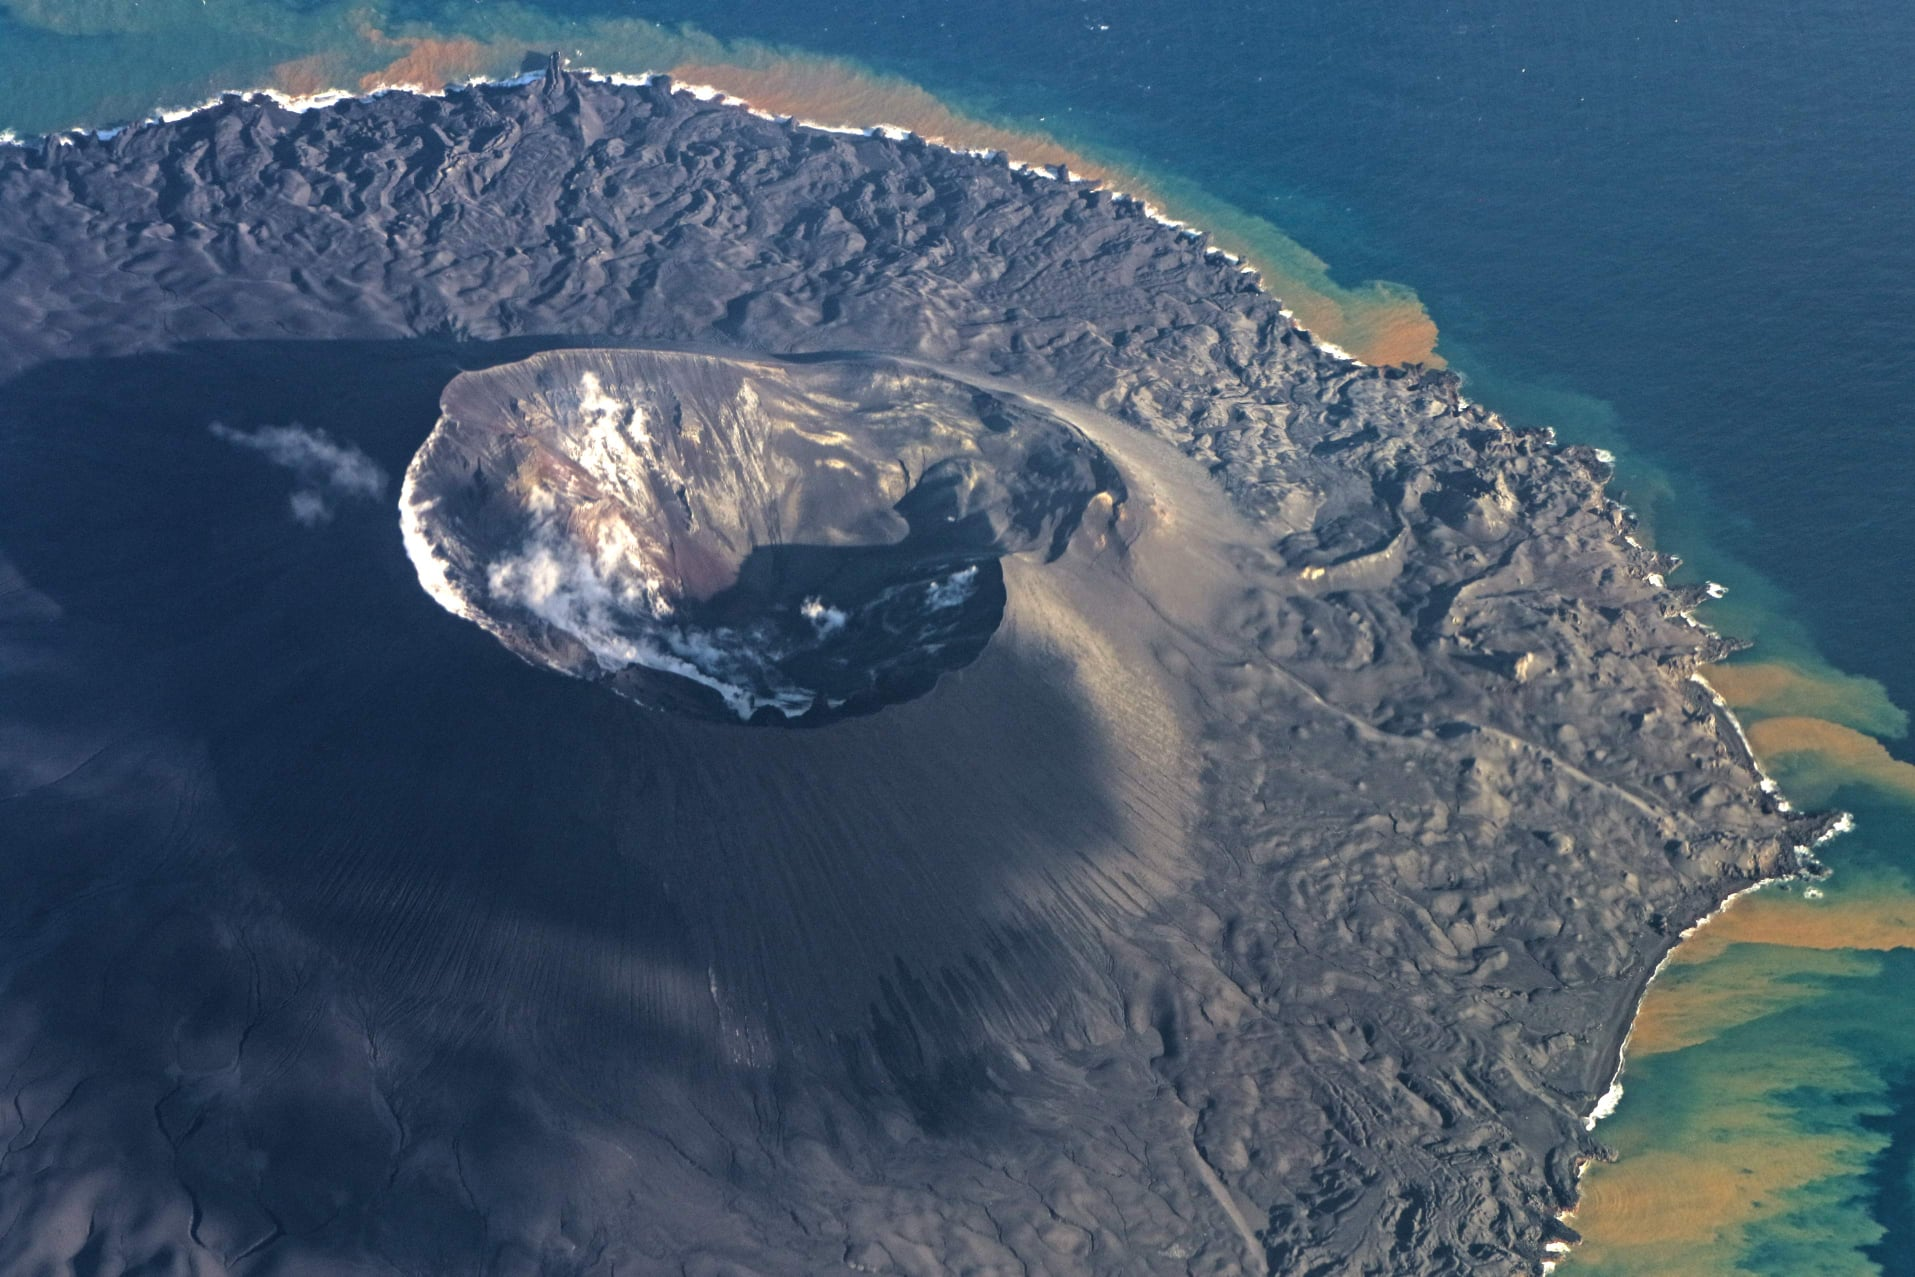 December 03, 2020. EN. Indonesia : Ili Lewotolok , Japan : Nishinoshima , United States : Yellowstone , Kamchatka : Karymsky .